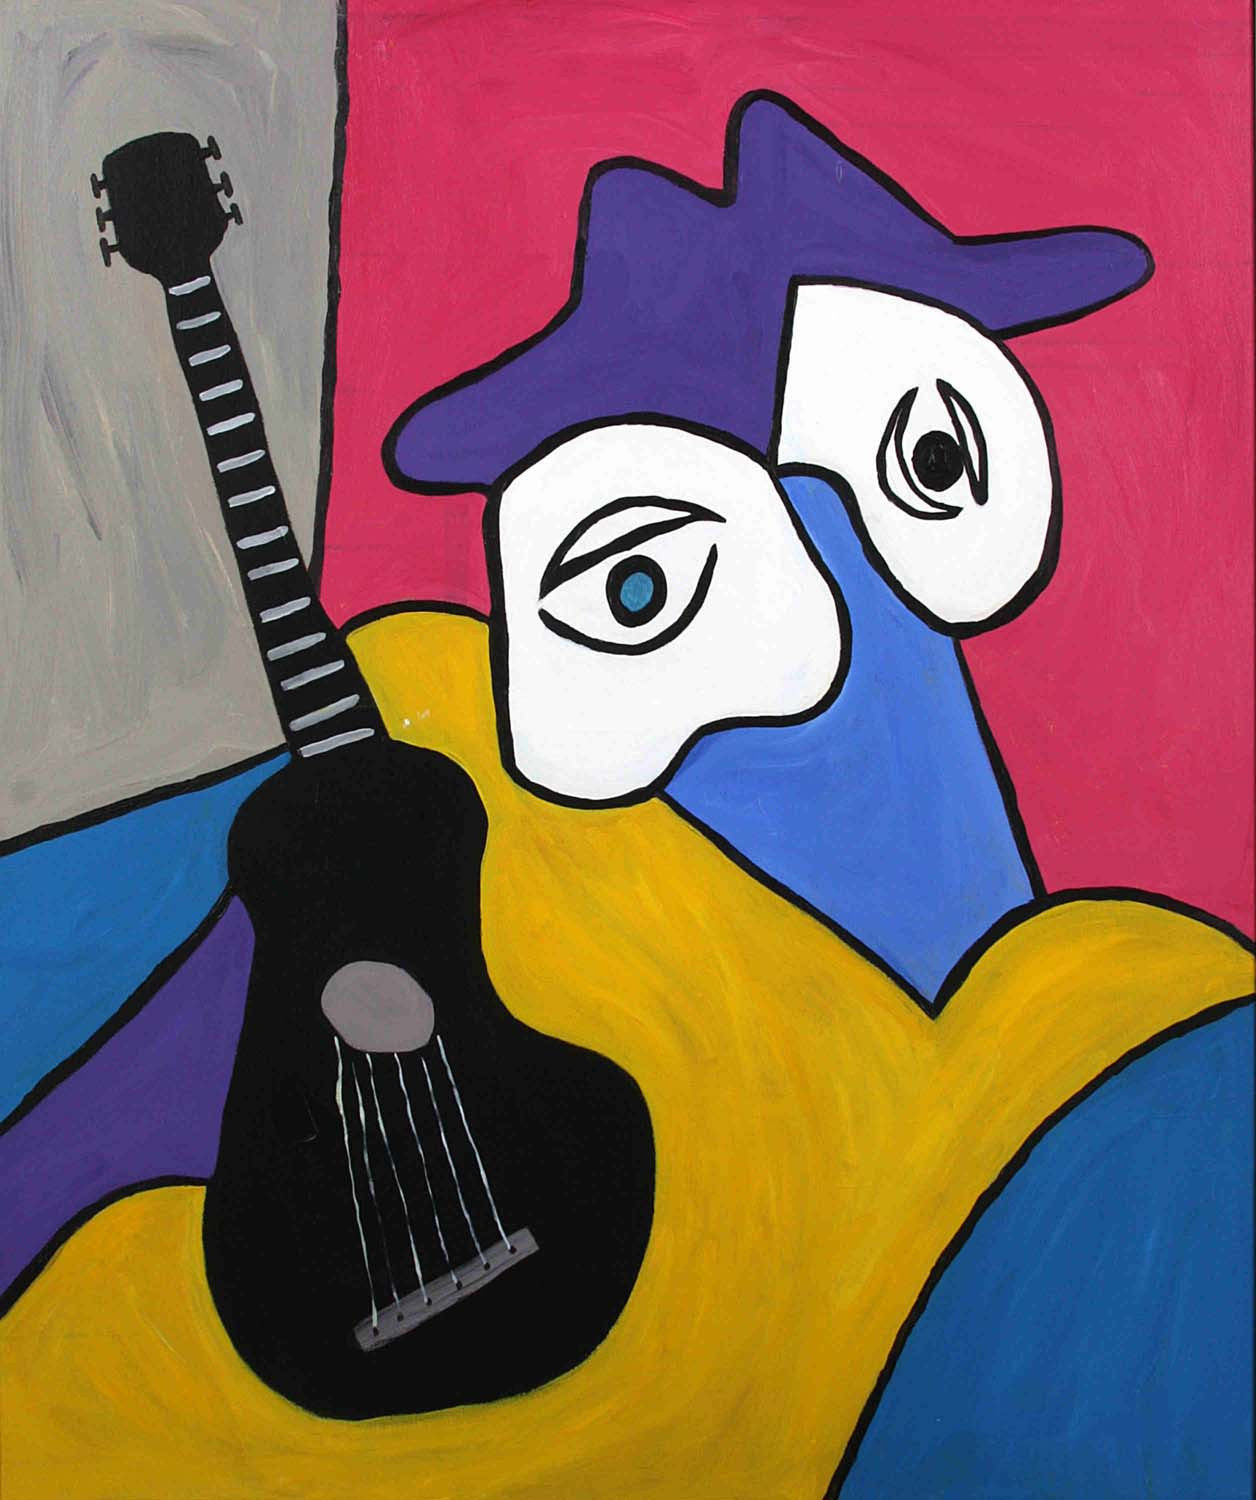 Musician And His Black Guitar - Canvas Prints by Christopher Noel ...